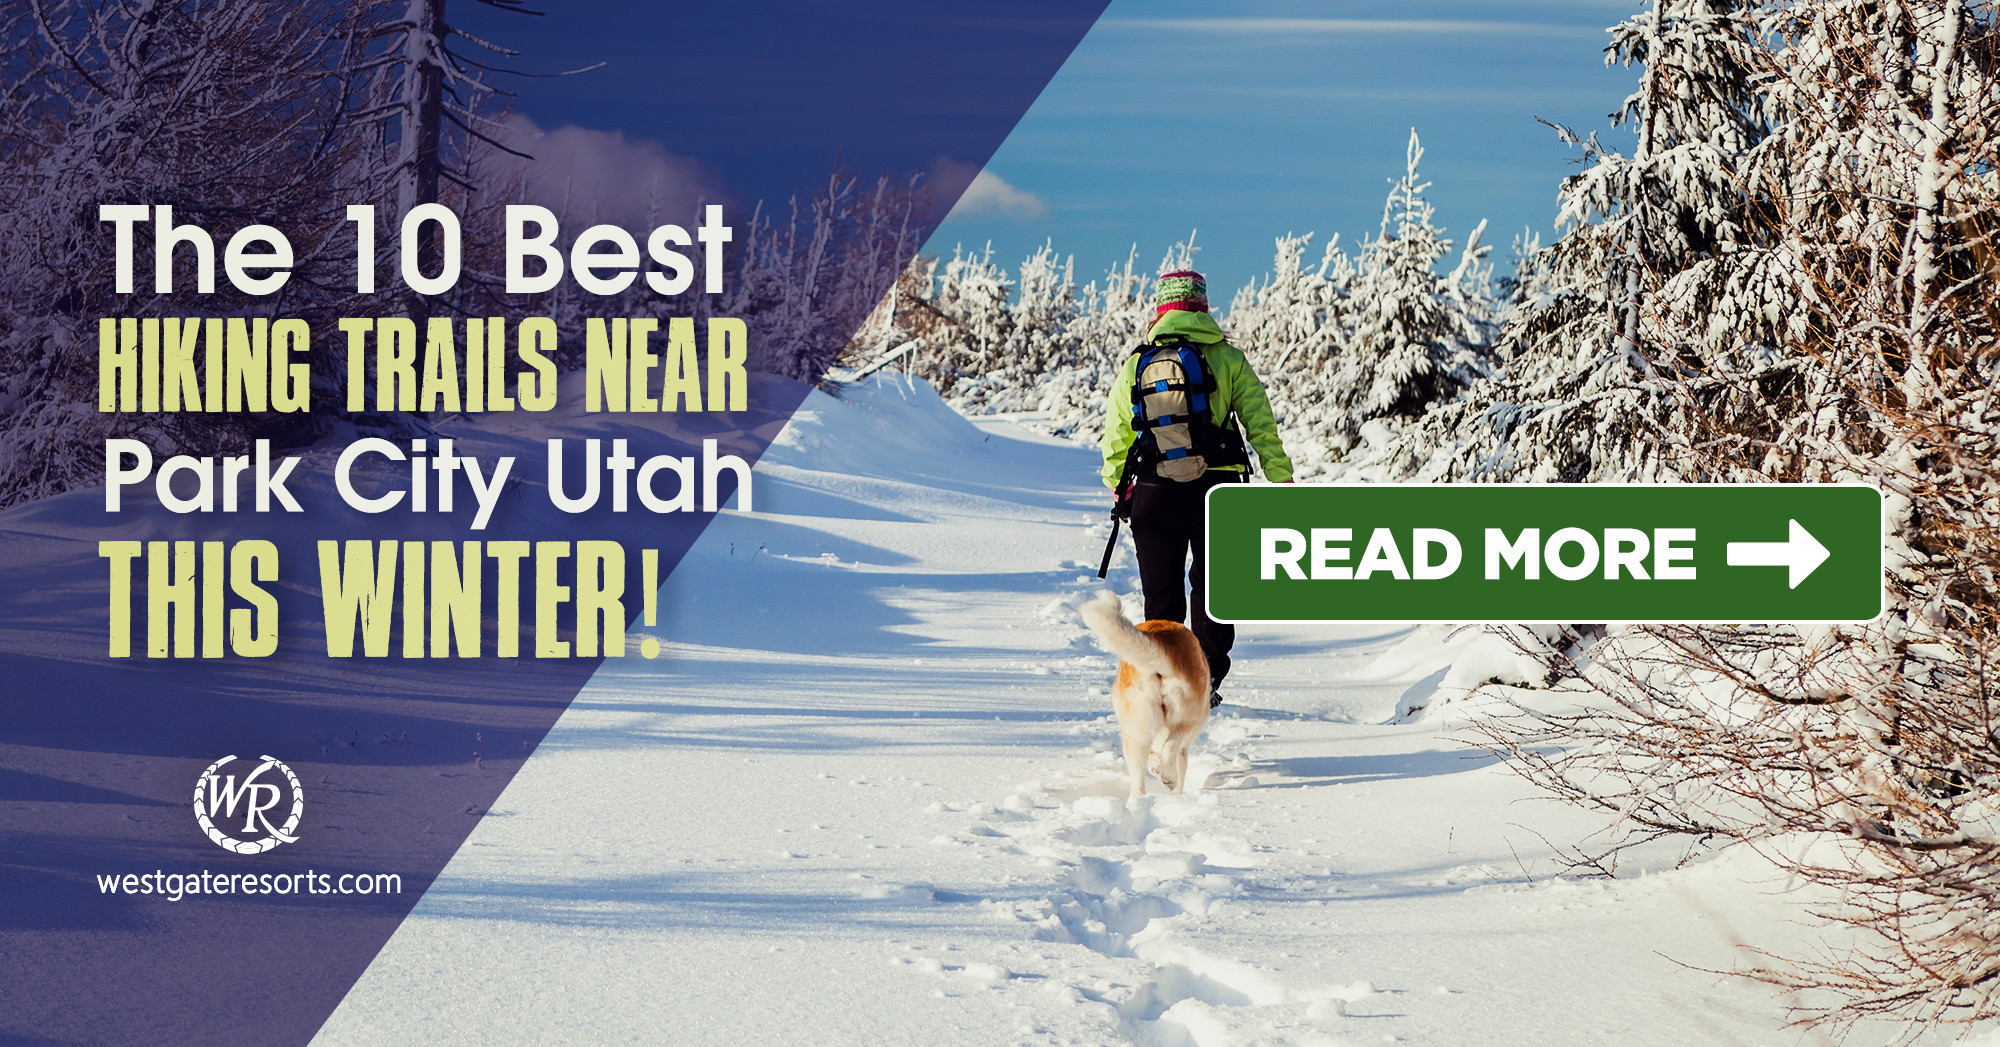 The 10 Best Hiking Trails Near Park City Utah This Winter | Park City Trail Series